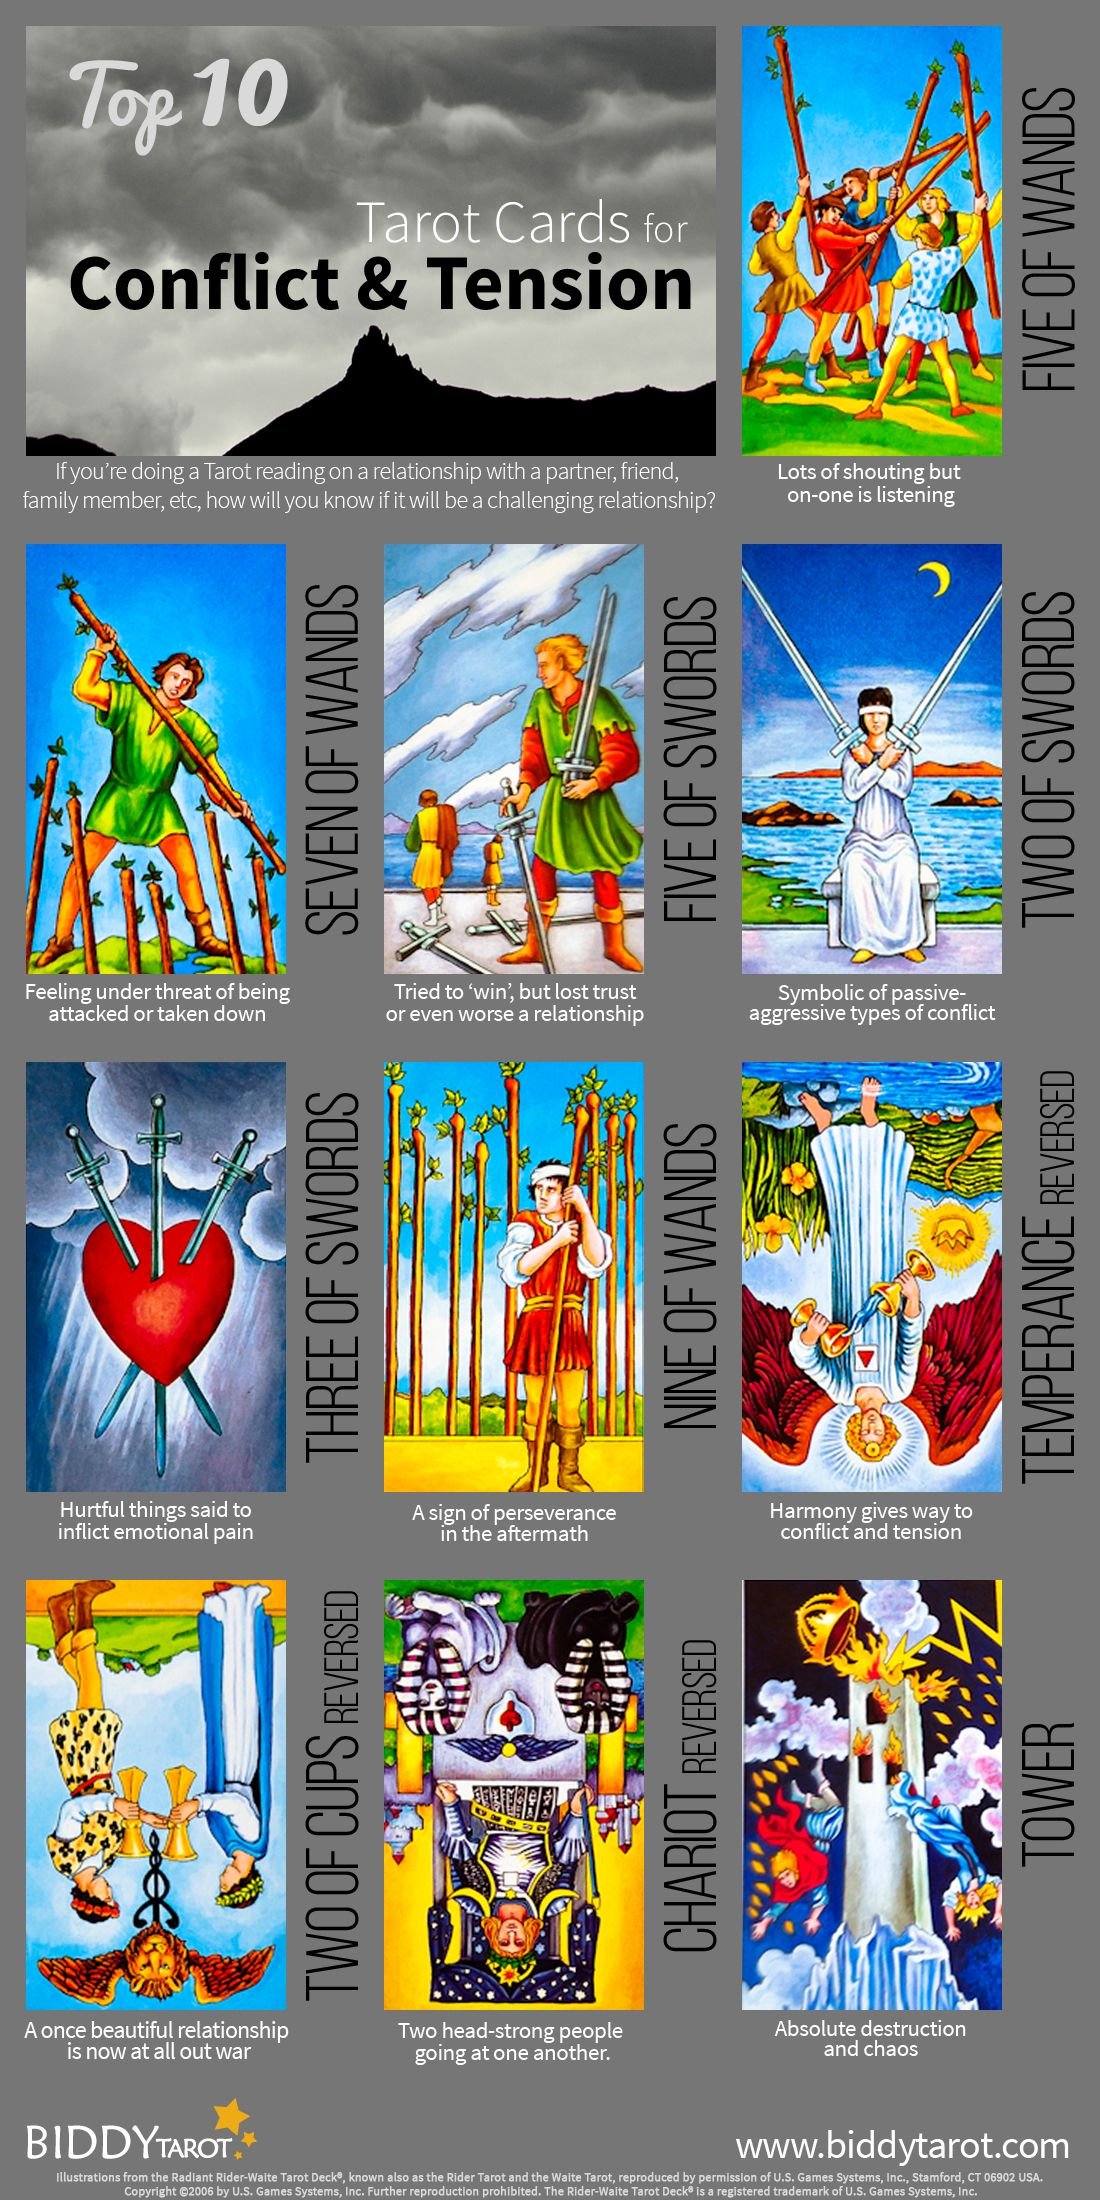 Divination: #Tarot Top 10 Conflict & Tension Cards